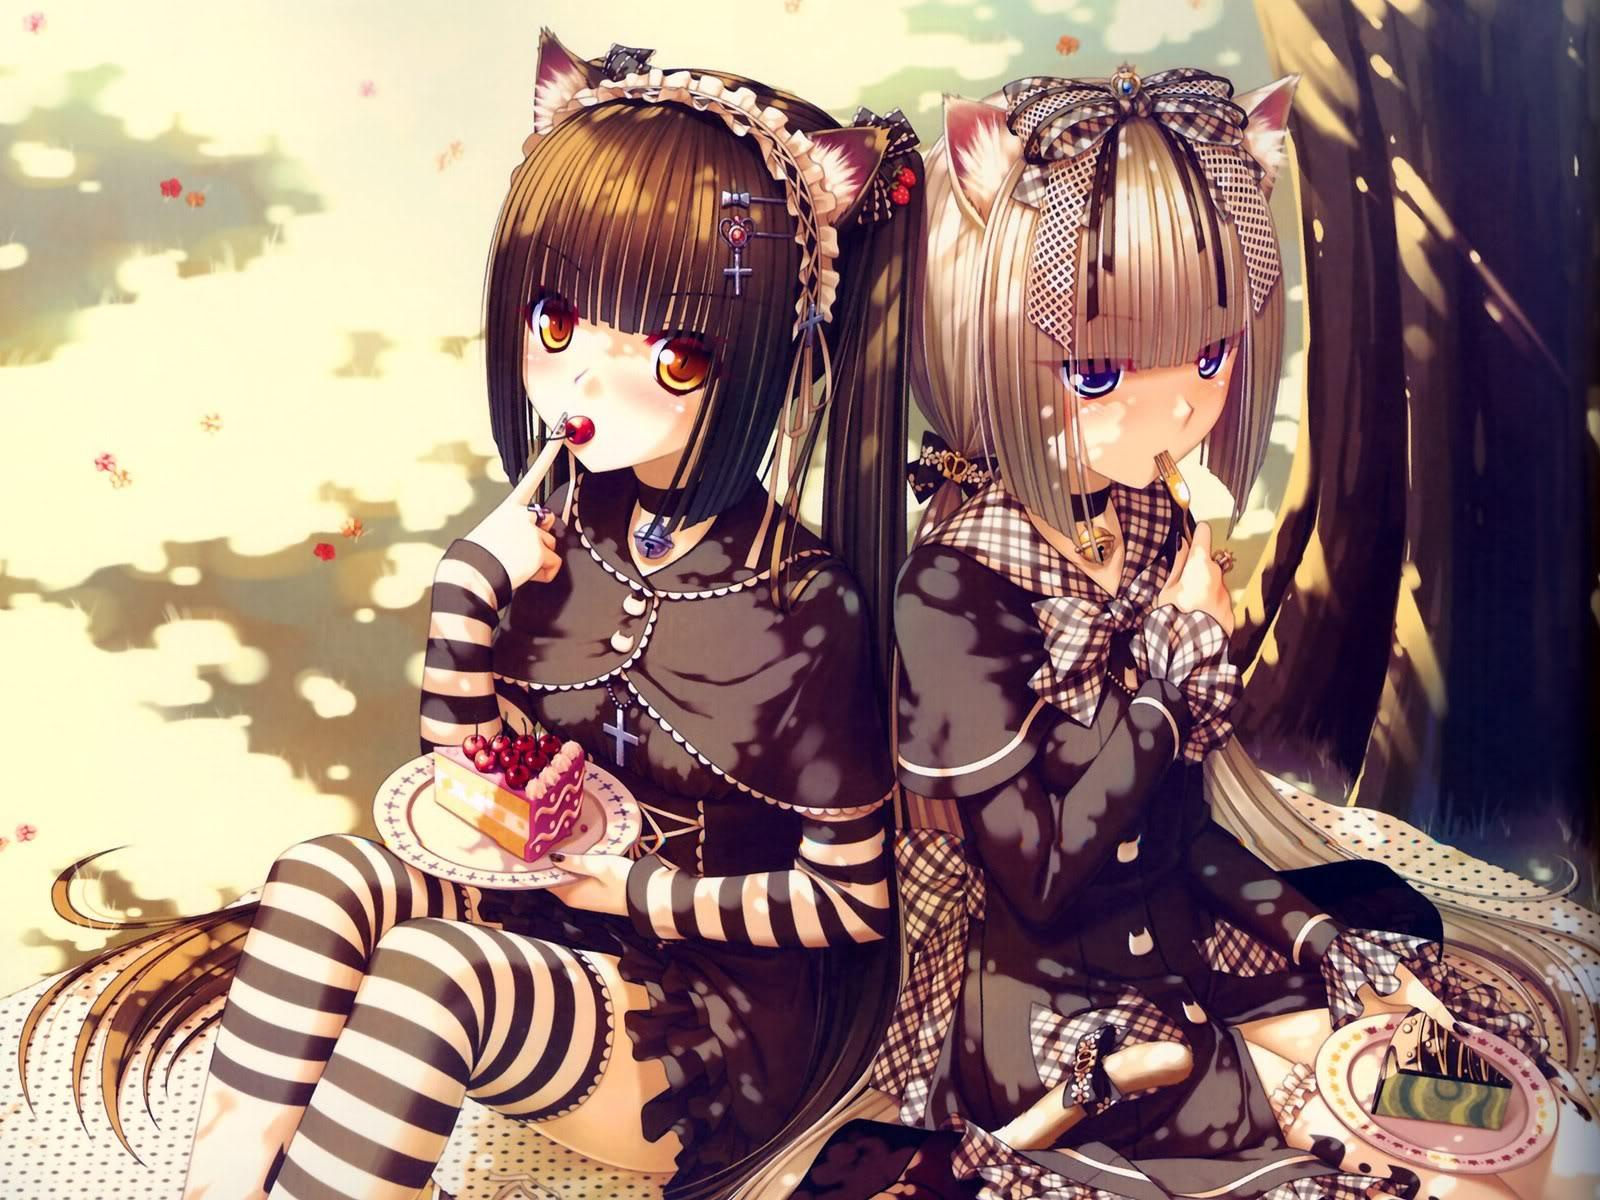 http://3.bp.blogspot.com/_LQG5yjkmXi0/TIWIlO0nGmI/AAAAAAAAADI/1qw2gN_q_ns/S1600-R/cute-anime-girls-in-fall_1600x1200.jpg